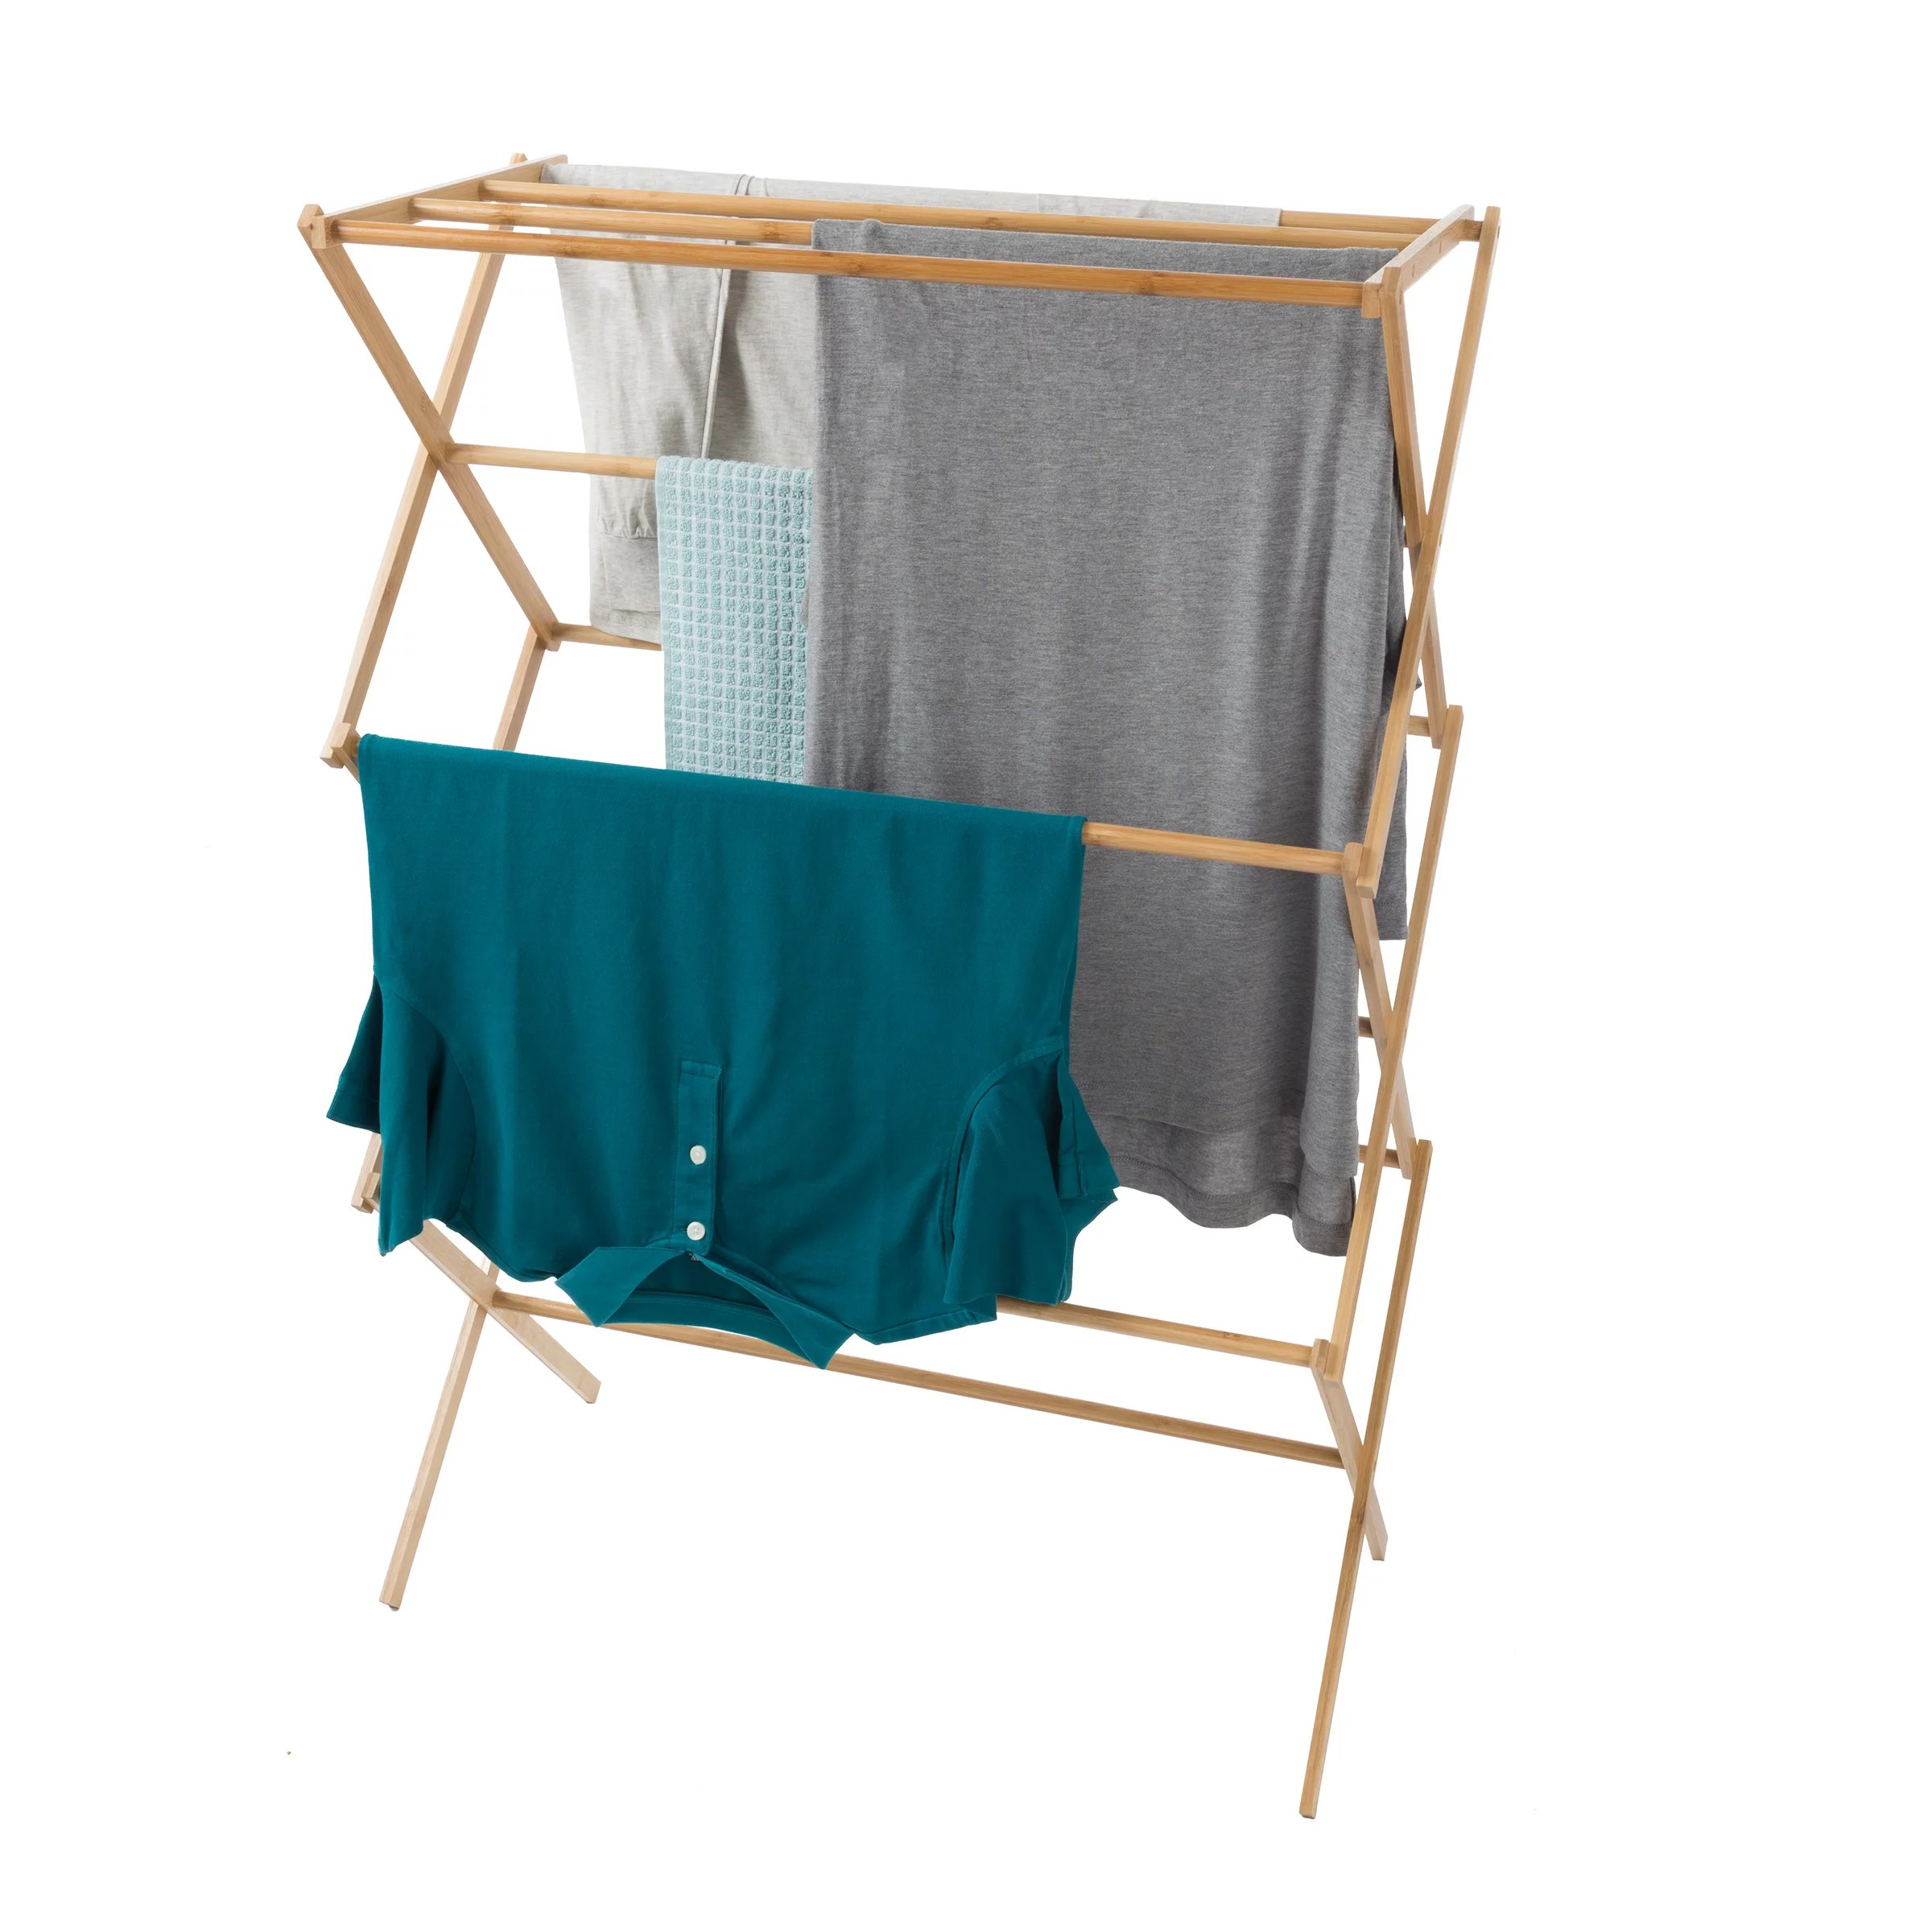 portable bamboo clothes drying rack collapsible and compact for indoor outdoor use by lavish home walmart com